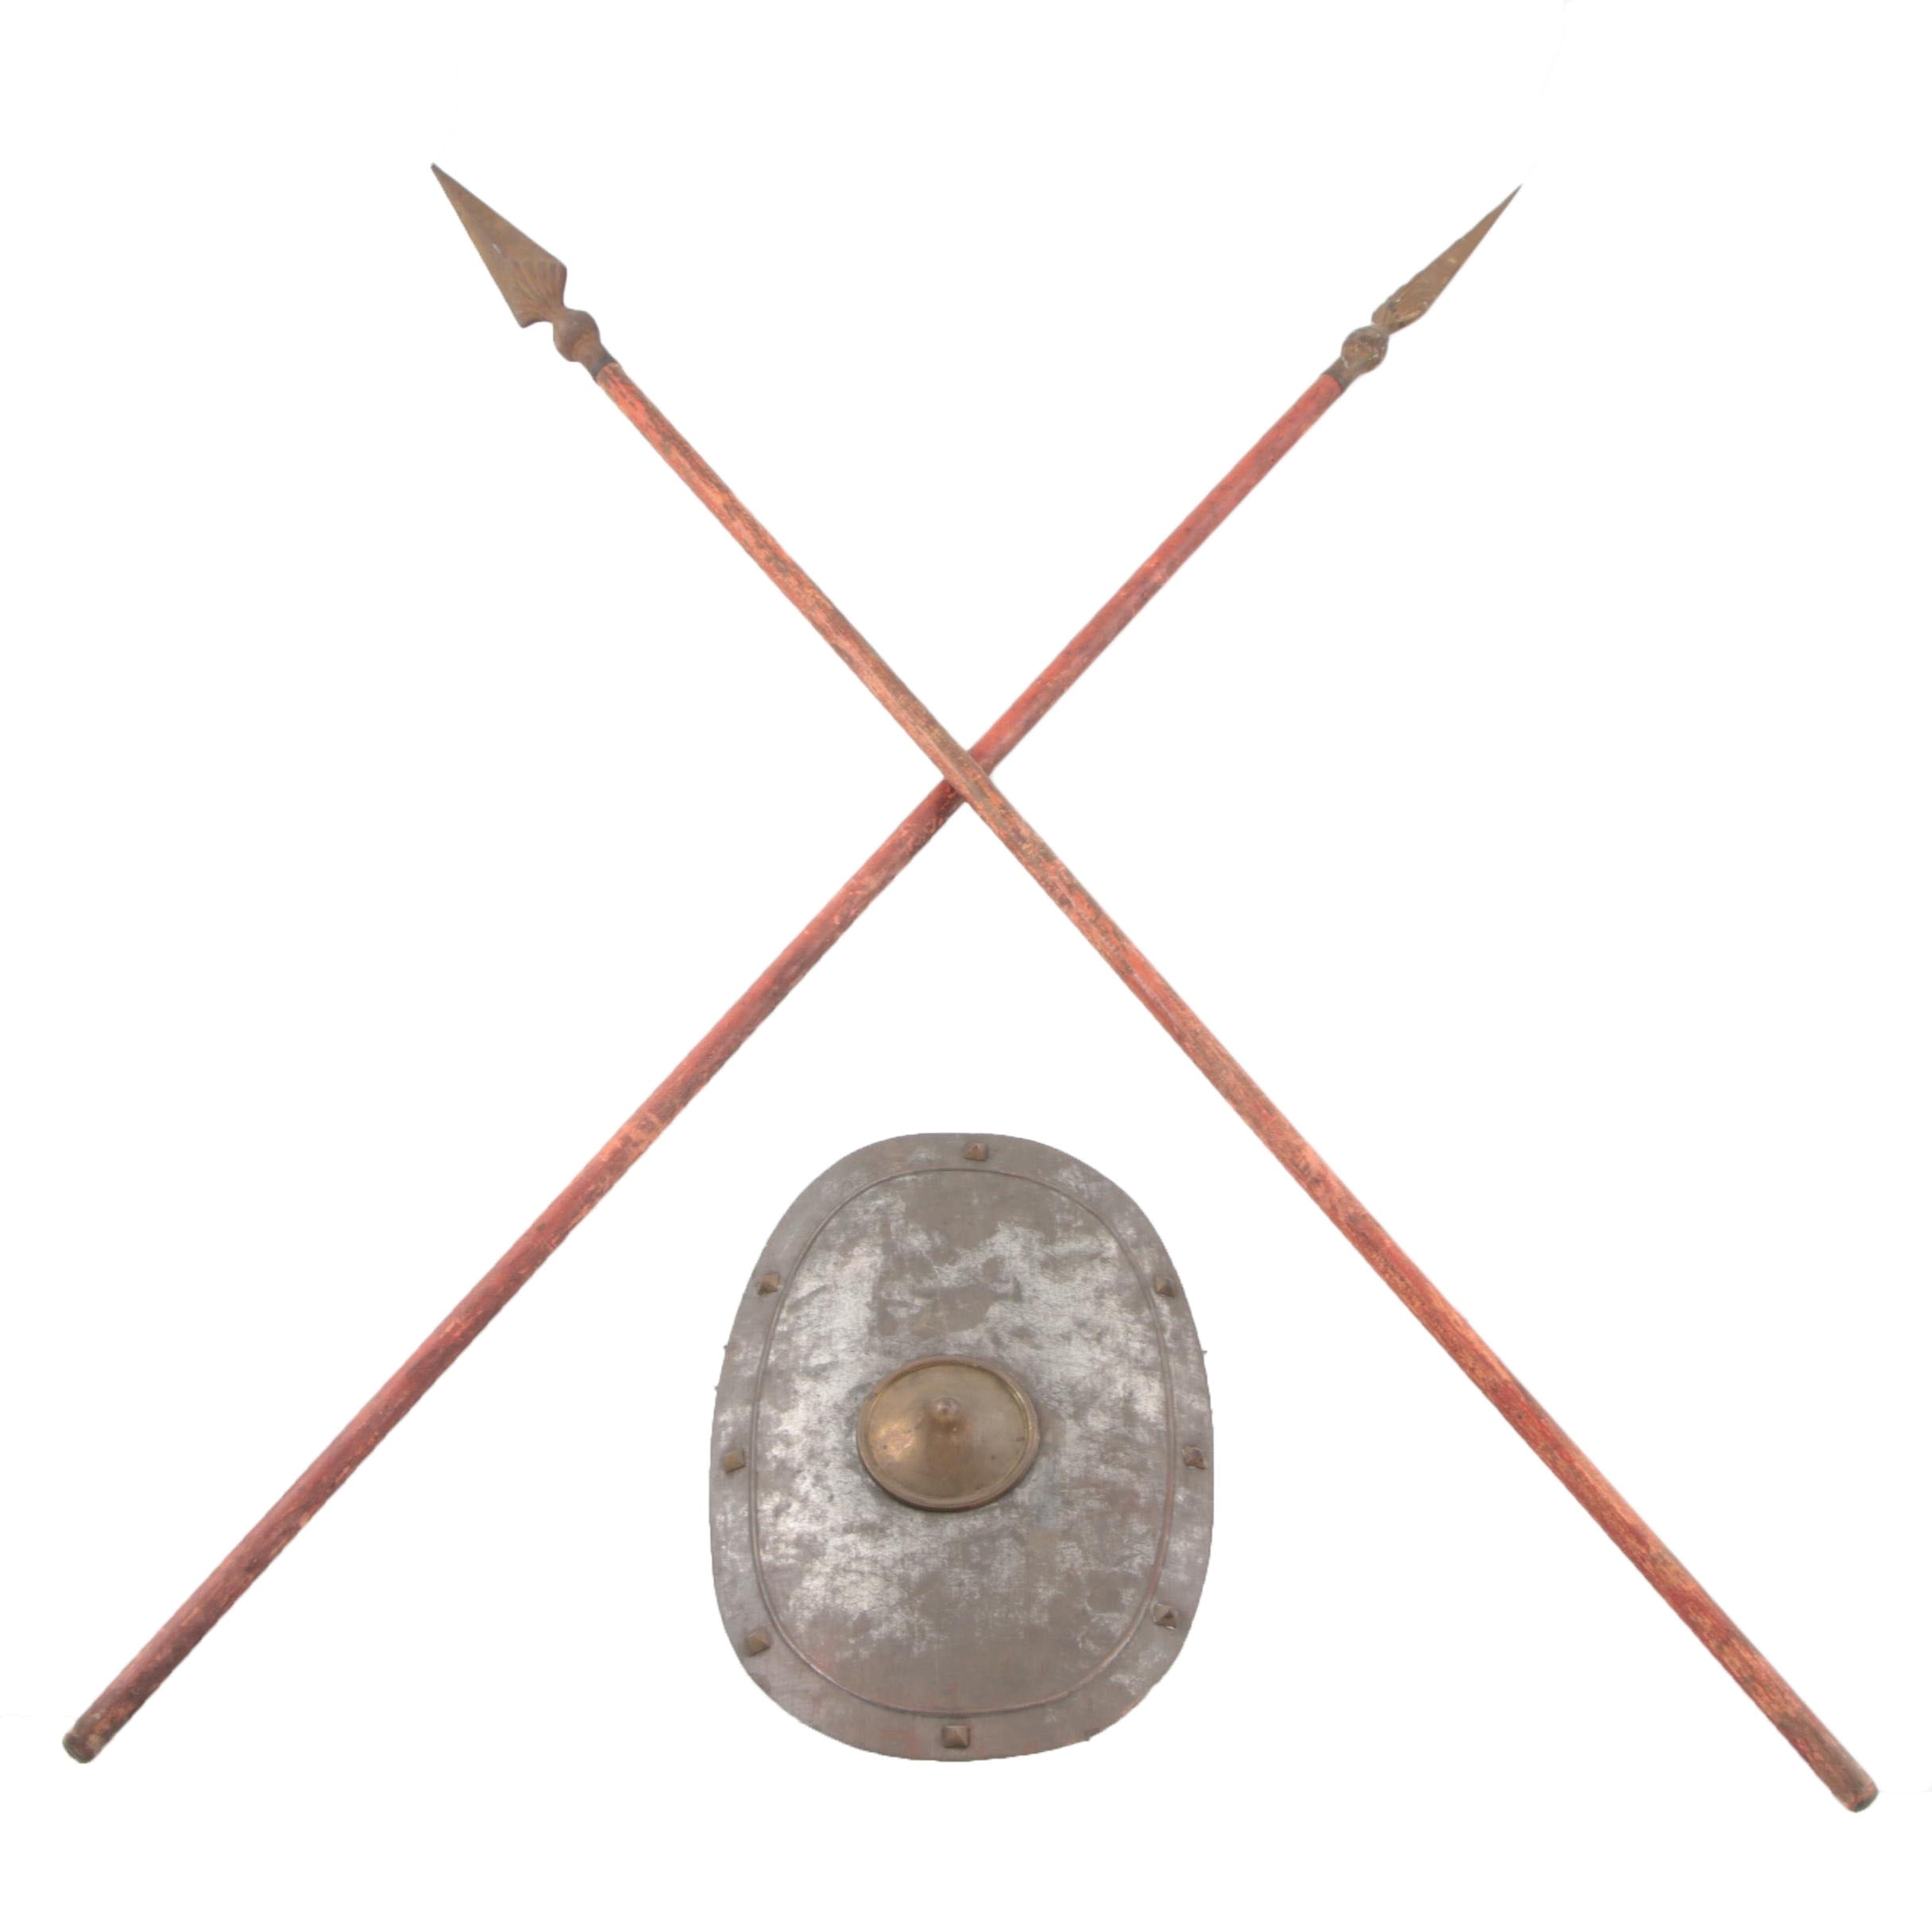 Vintage Replica Spears And Shield